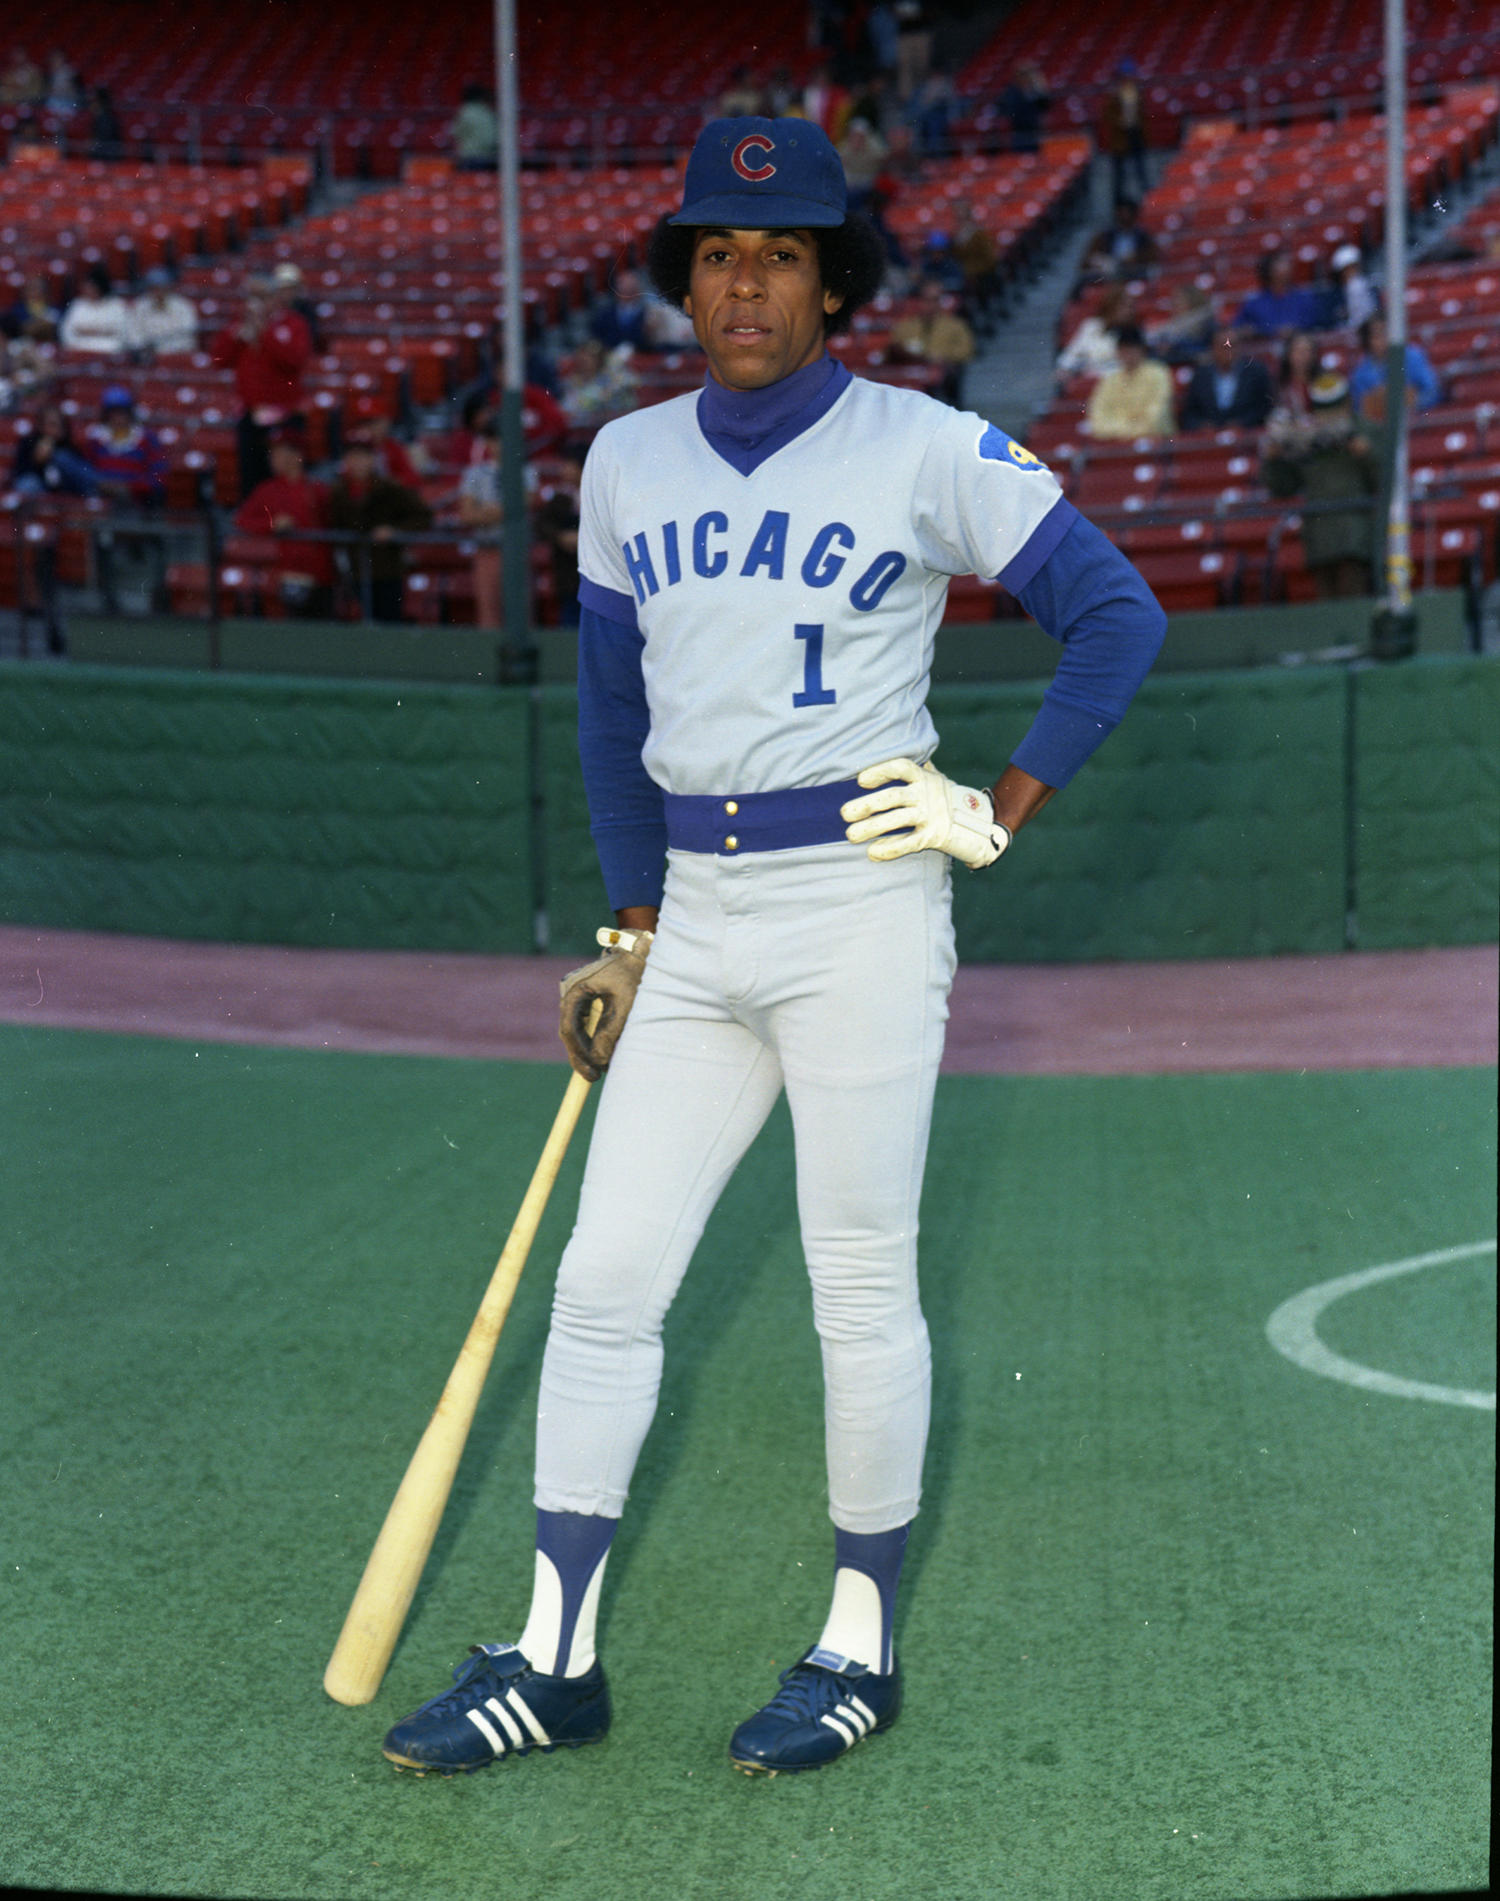 José Cardenal played for the Chicago Cubs for six seasons until he was traded to the Phillies following the 1977 season. (Doug McWilliams / National Baseball Hall of Fame)